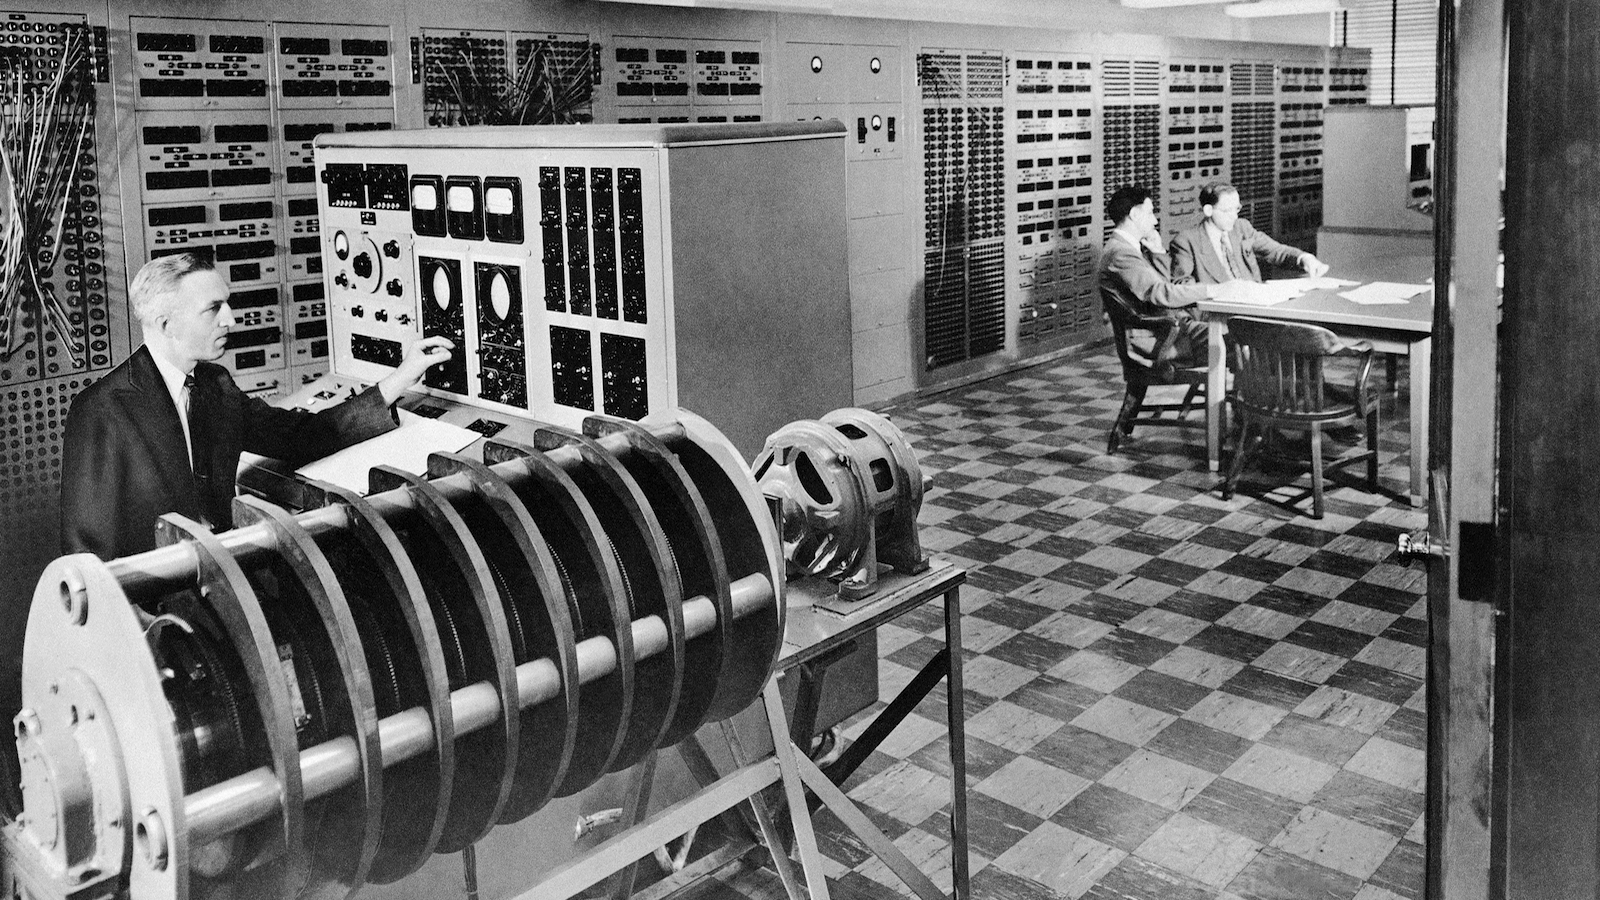 How far can you drop a box of eggs without breaking any of them? An electronic brain, weighing three tons, could tell you, without harming a single egg. It could set up electrical models of the eggs and box, and show what kind of fall would crack the eggs. Shown is the 6,000 pound computer which fills 13 cabinets has 25 miles of wire and 2,500 electrical switches and cabinets. The electric analog computer named ANACOM shown here is housed at Caltech in Southern California, July 26, 1950. (AP Photo)